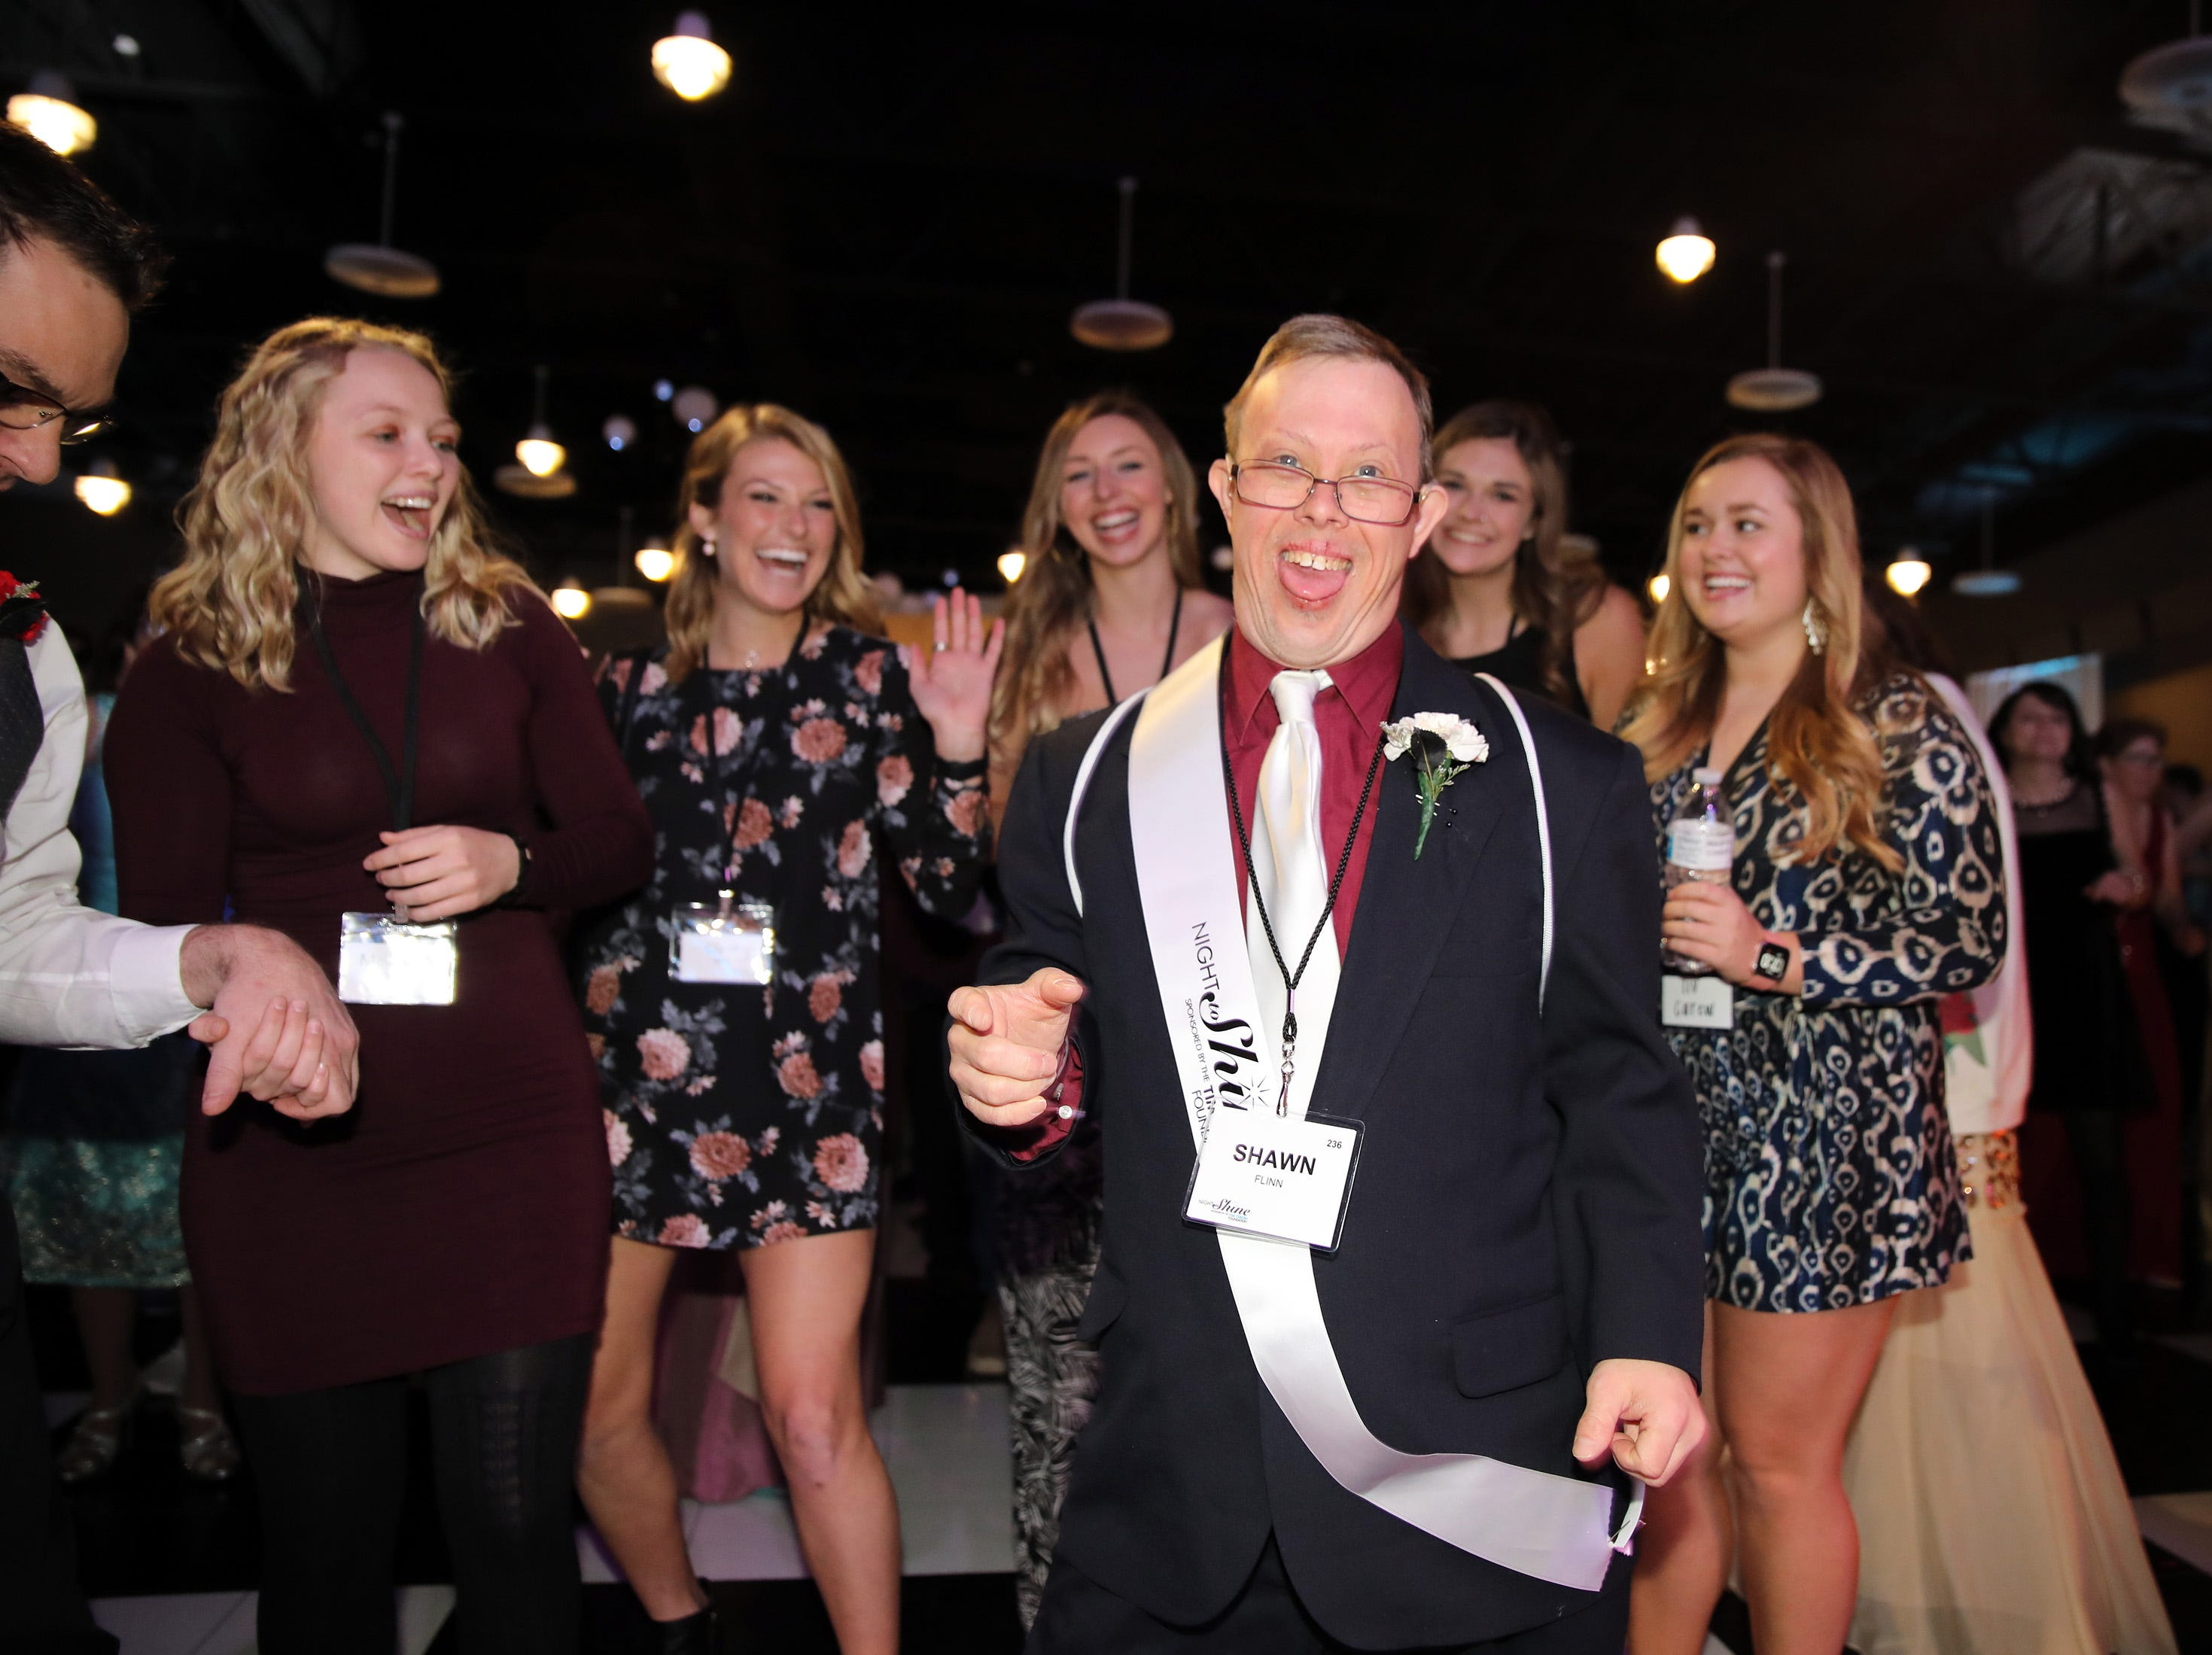 Shawn Flinn dances as the Cupid Shuffle plays during the Night to Shine event at Prairie Ridge Church in Ankeny on Friday, Feb. 8, 2019. Sponsored by the Tim Tebow Foundation, the event for adults with special needs features a prom-like atmosphere with dancing, limo rides, food and more.